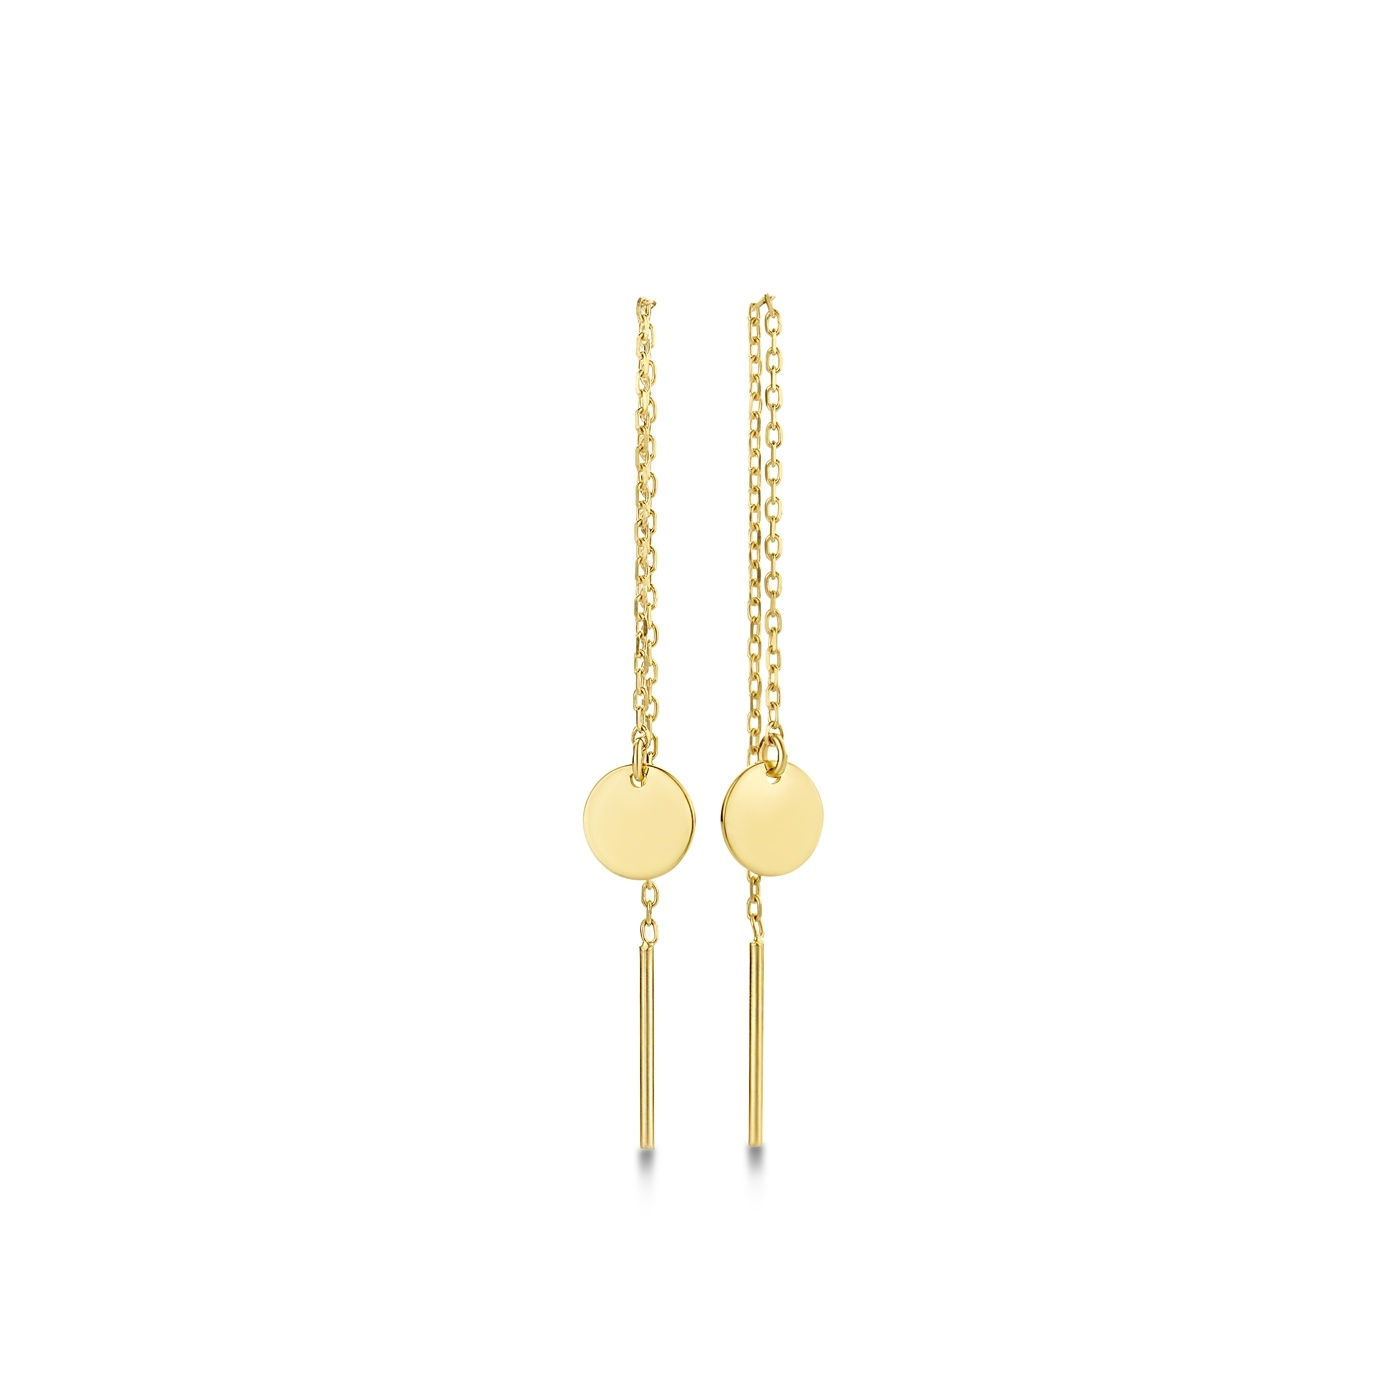 Isabel Bernard Le Marais Jeanne 14 carat gold drop earrings